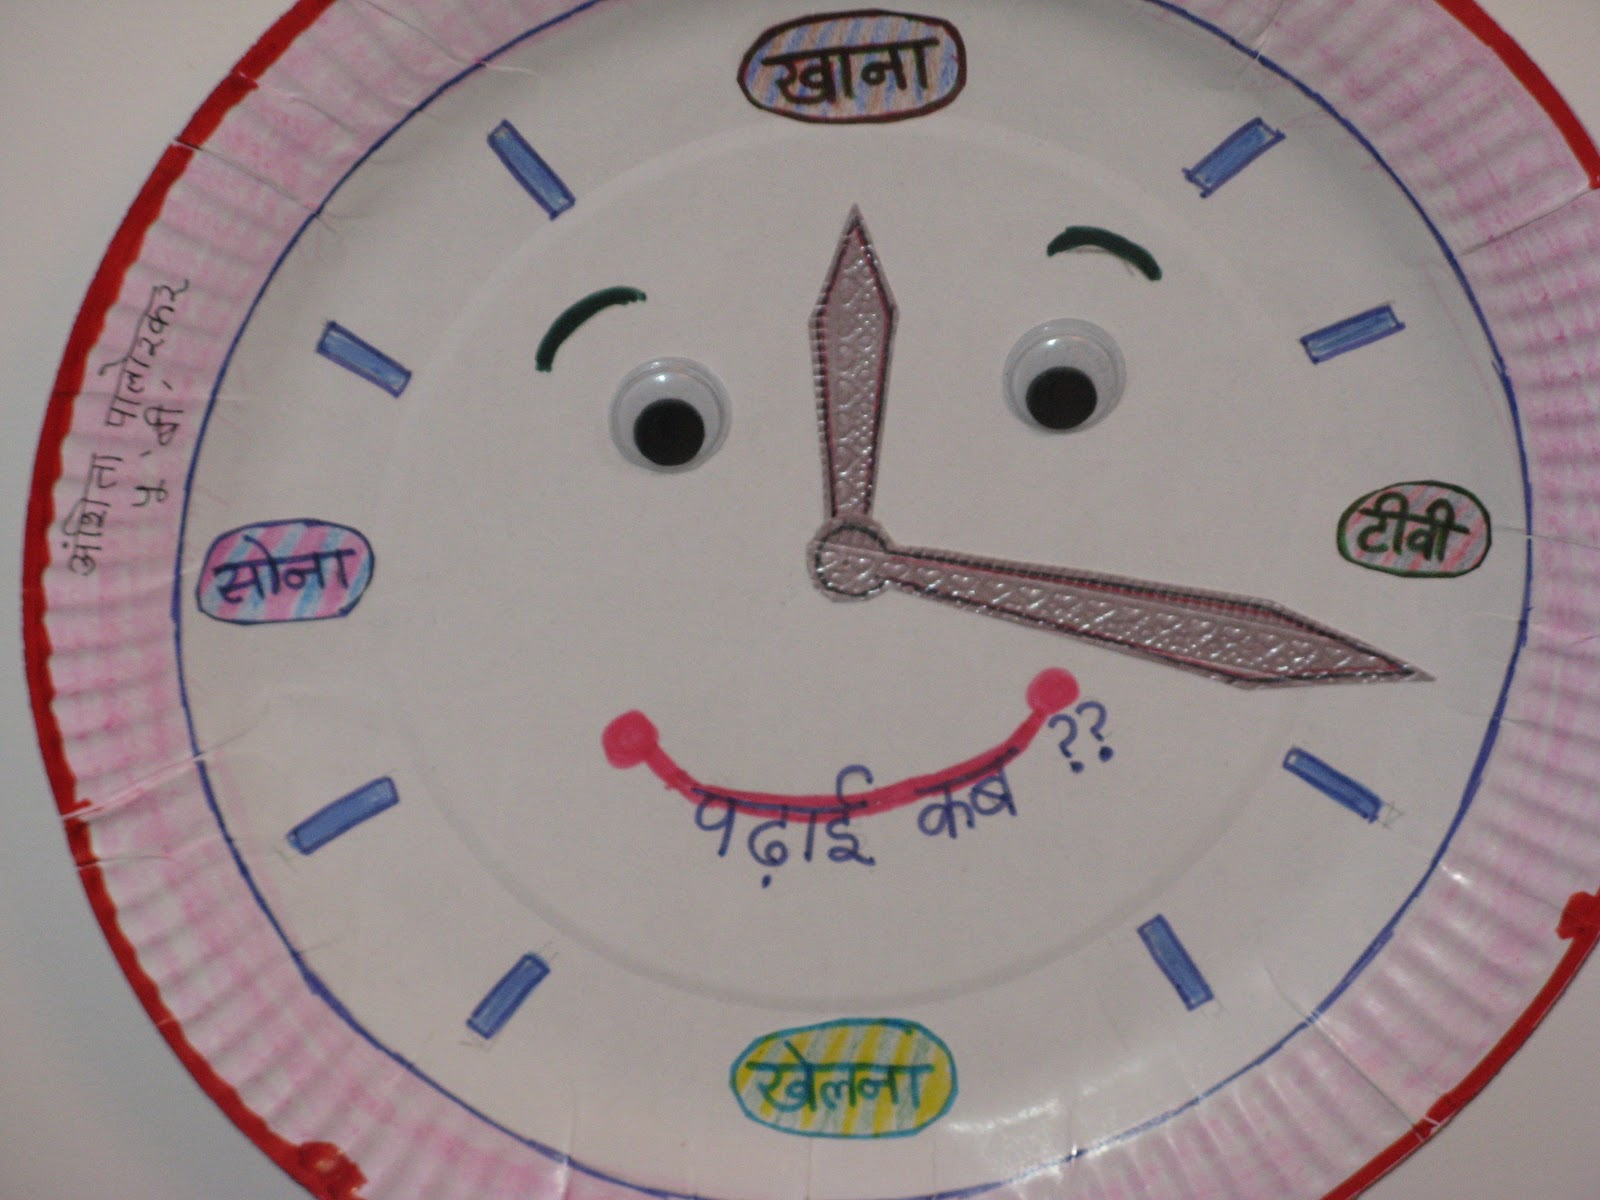 Creat e witty unleashed kids crafty time for Waste material craft ideas in hindi